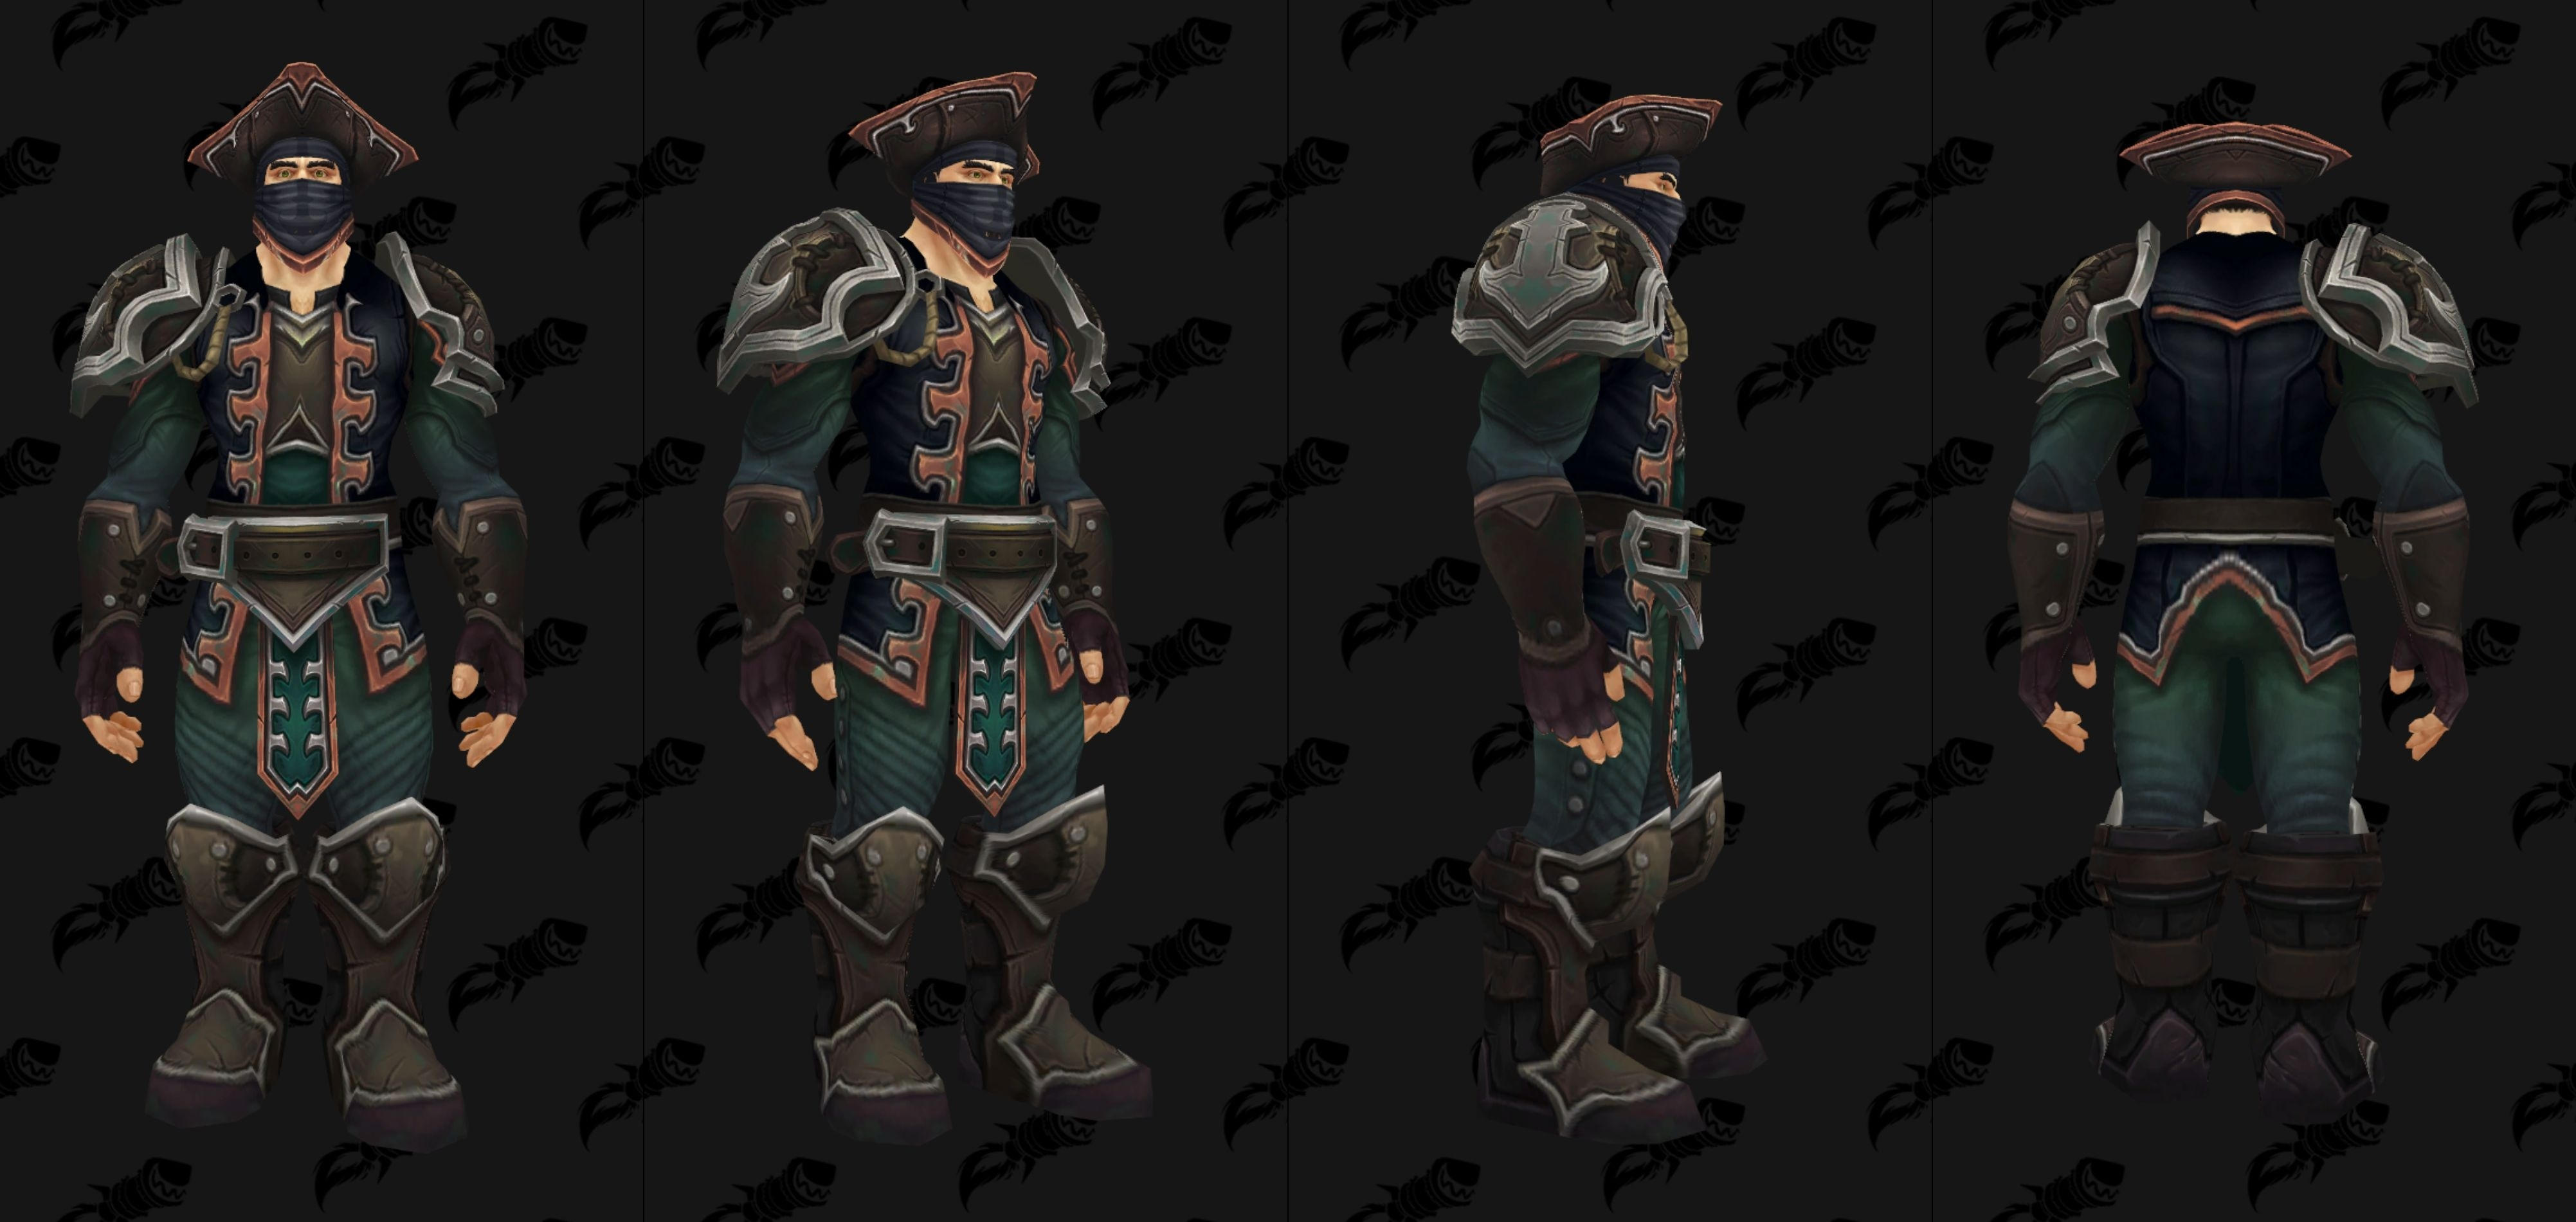 Battle for Azeroth Dungeon Armor - Leather Kul Tiras and